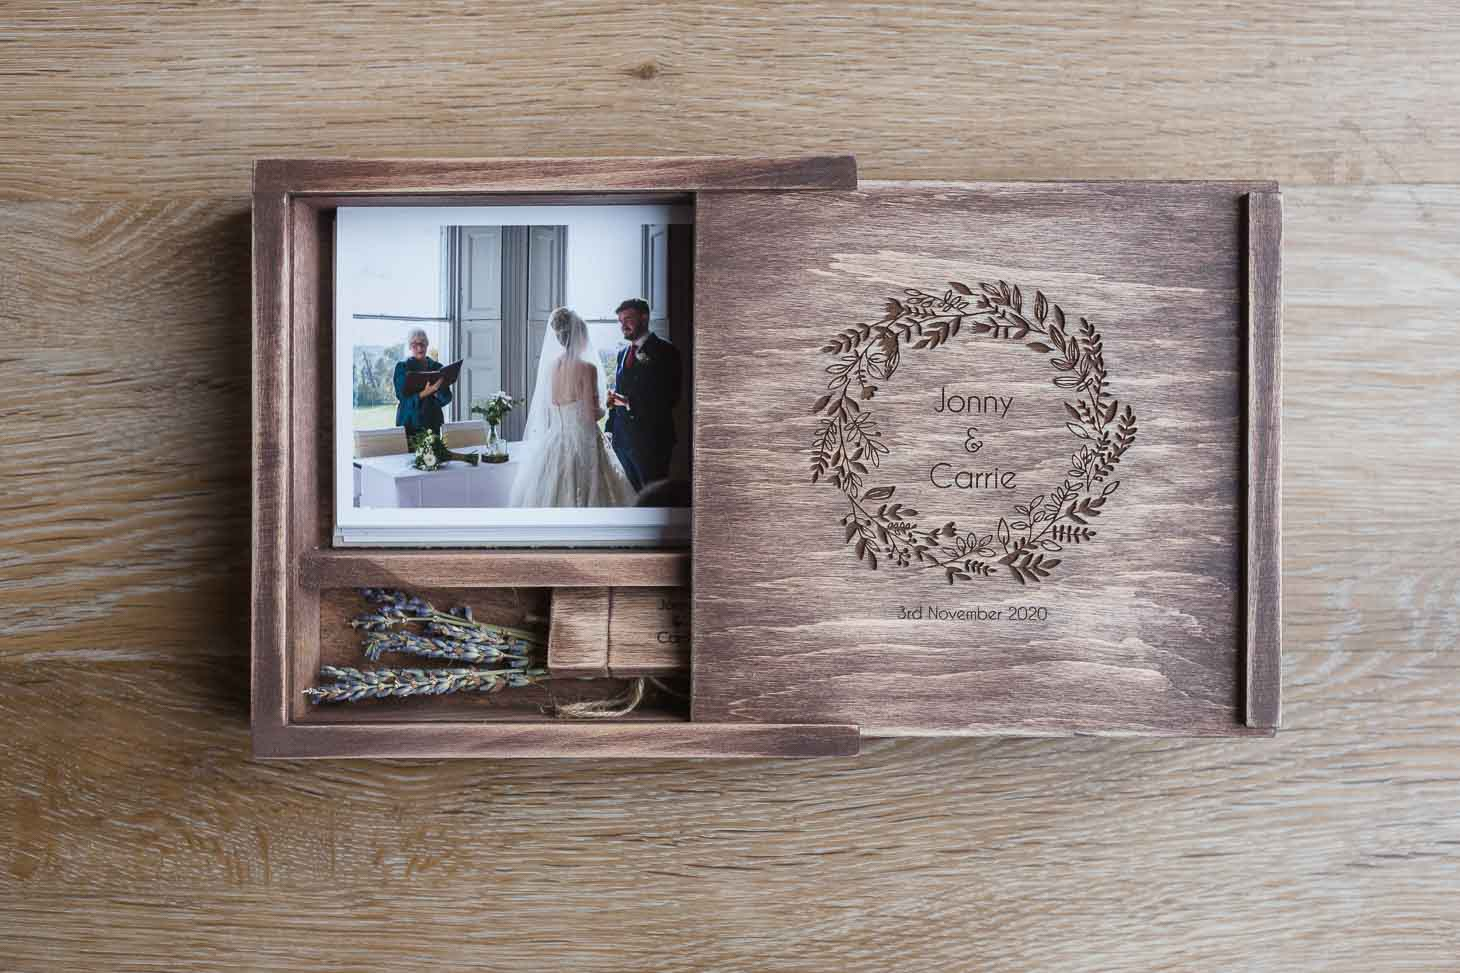 Presentation Box of Wedding Photographer Rose Dedman